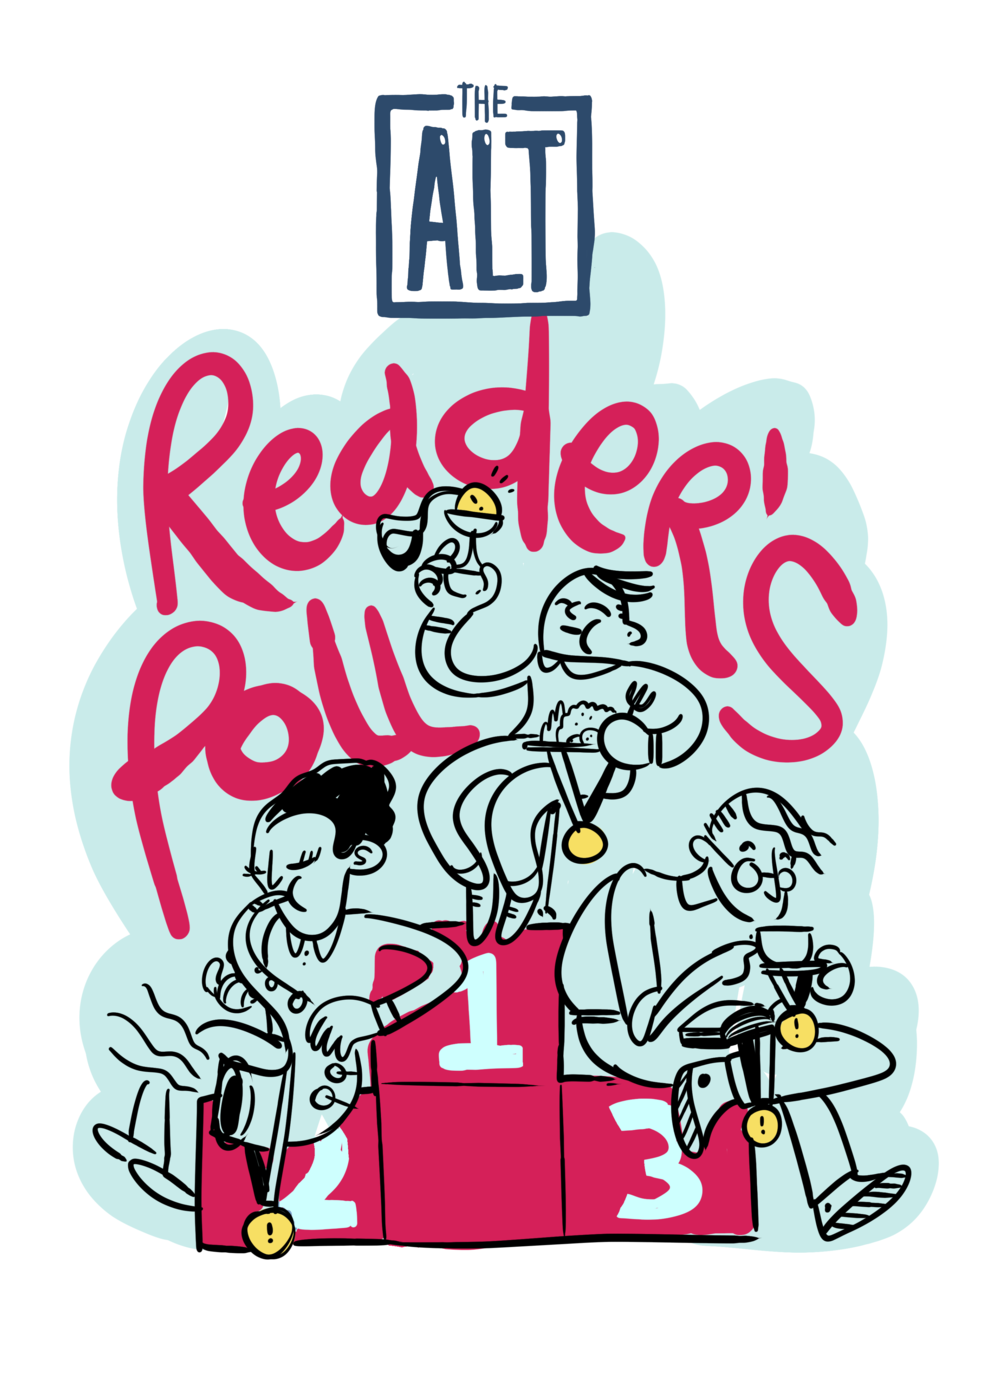 readers poll cover v1.png